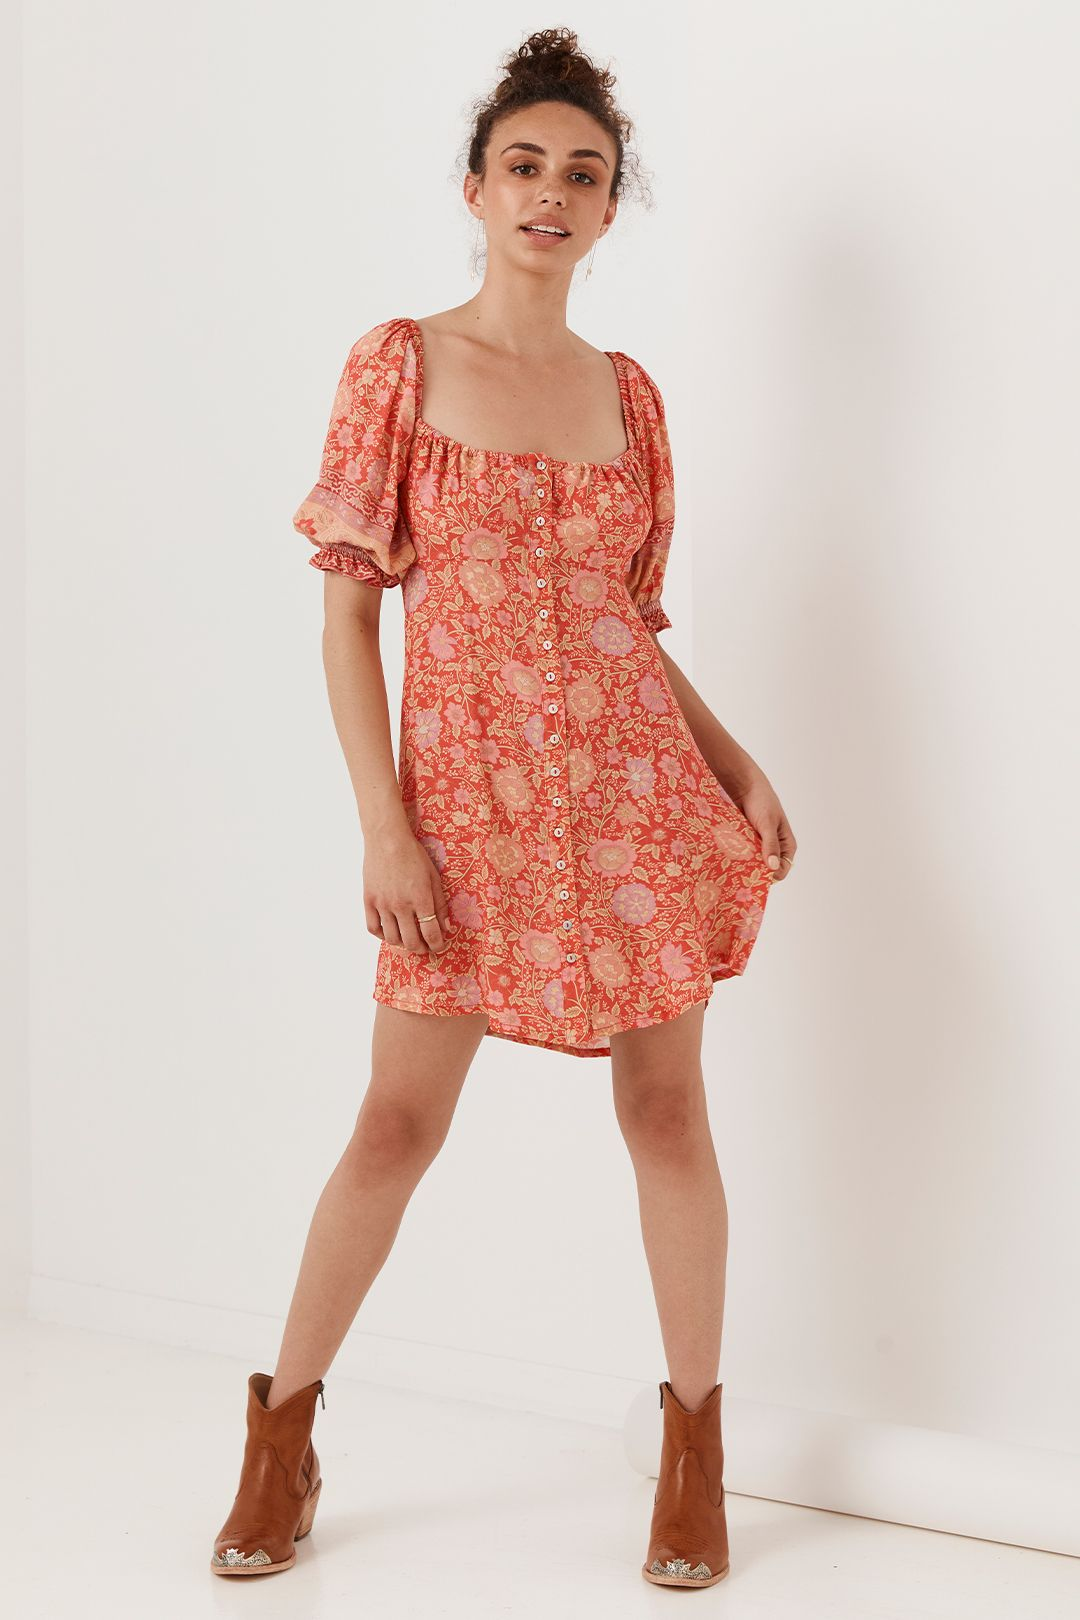 Spell Love Story Mini Dress Red Coral Floral Straight Neckline